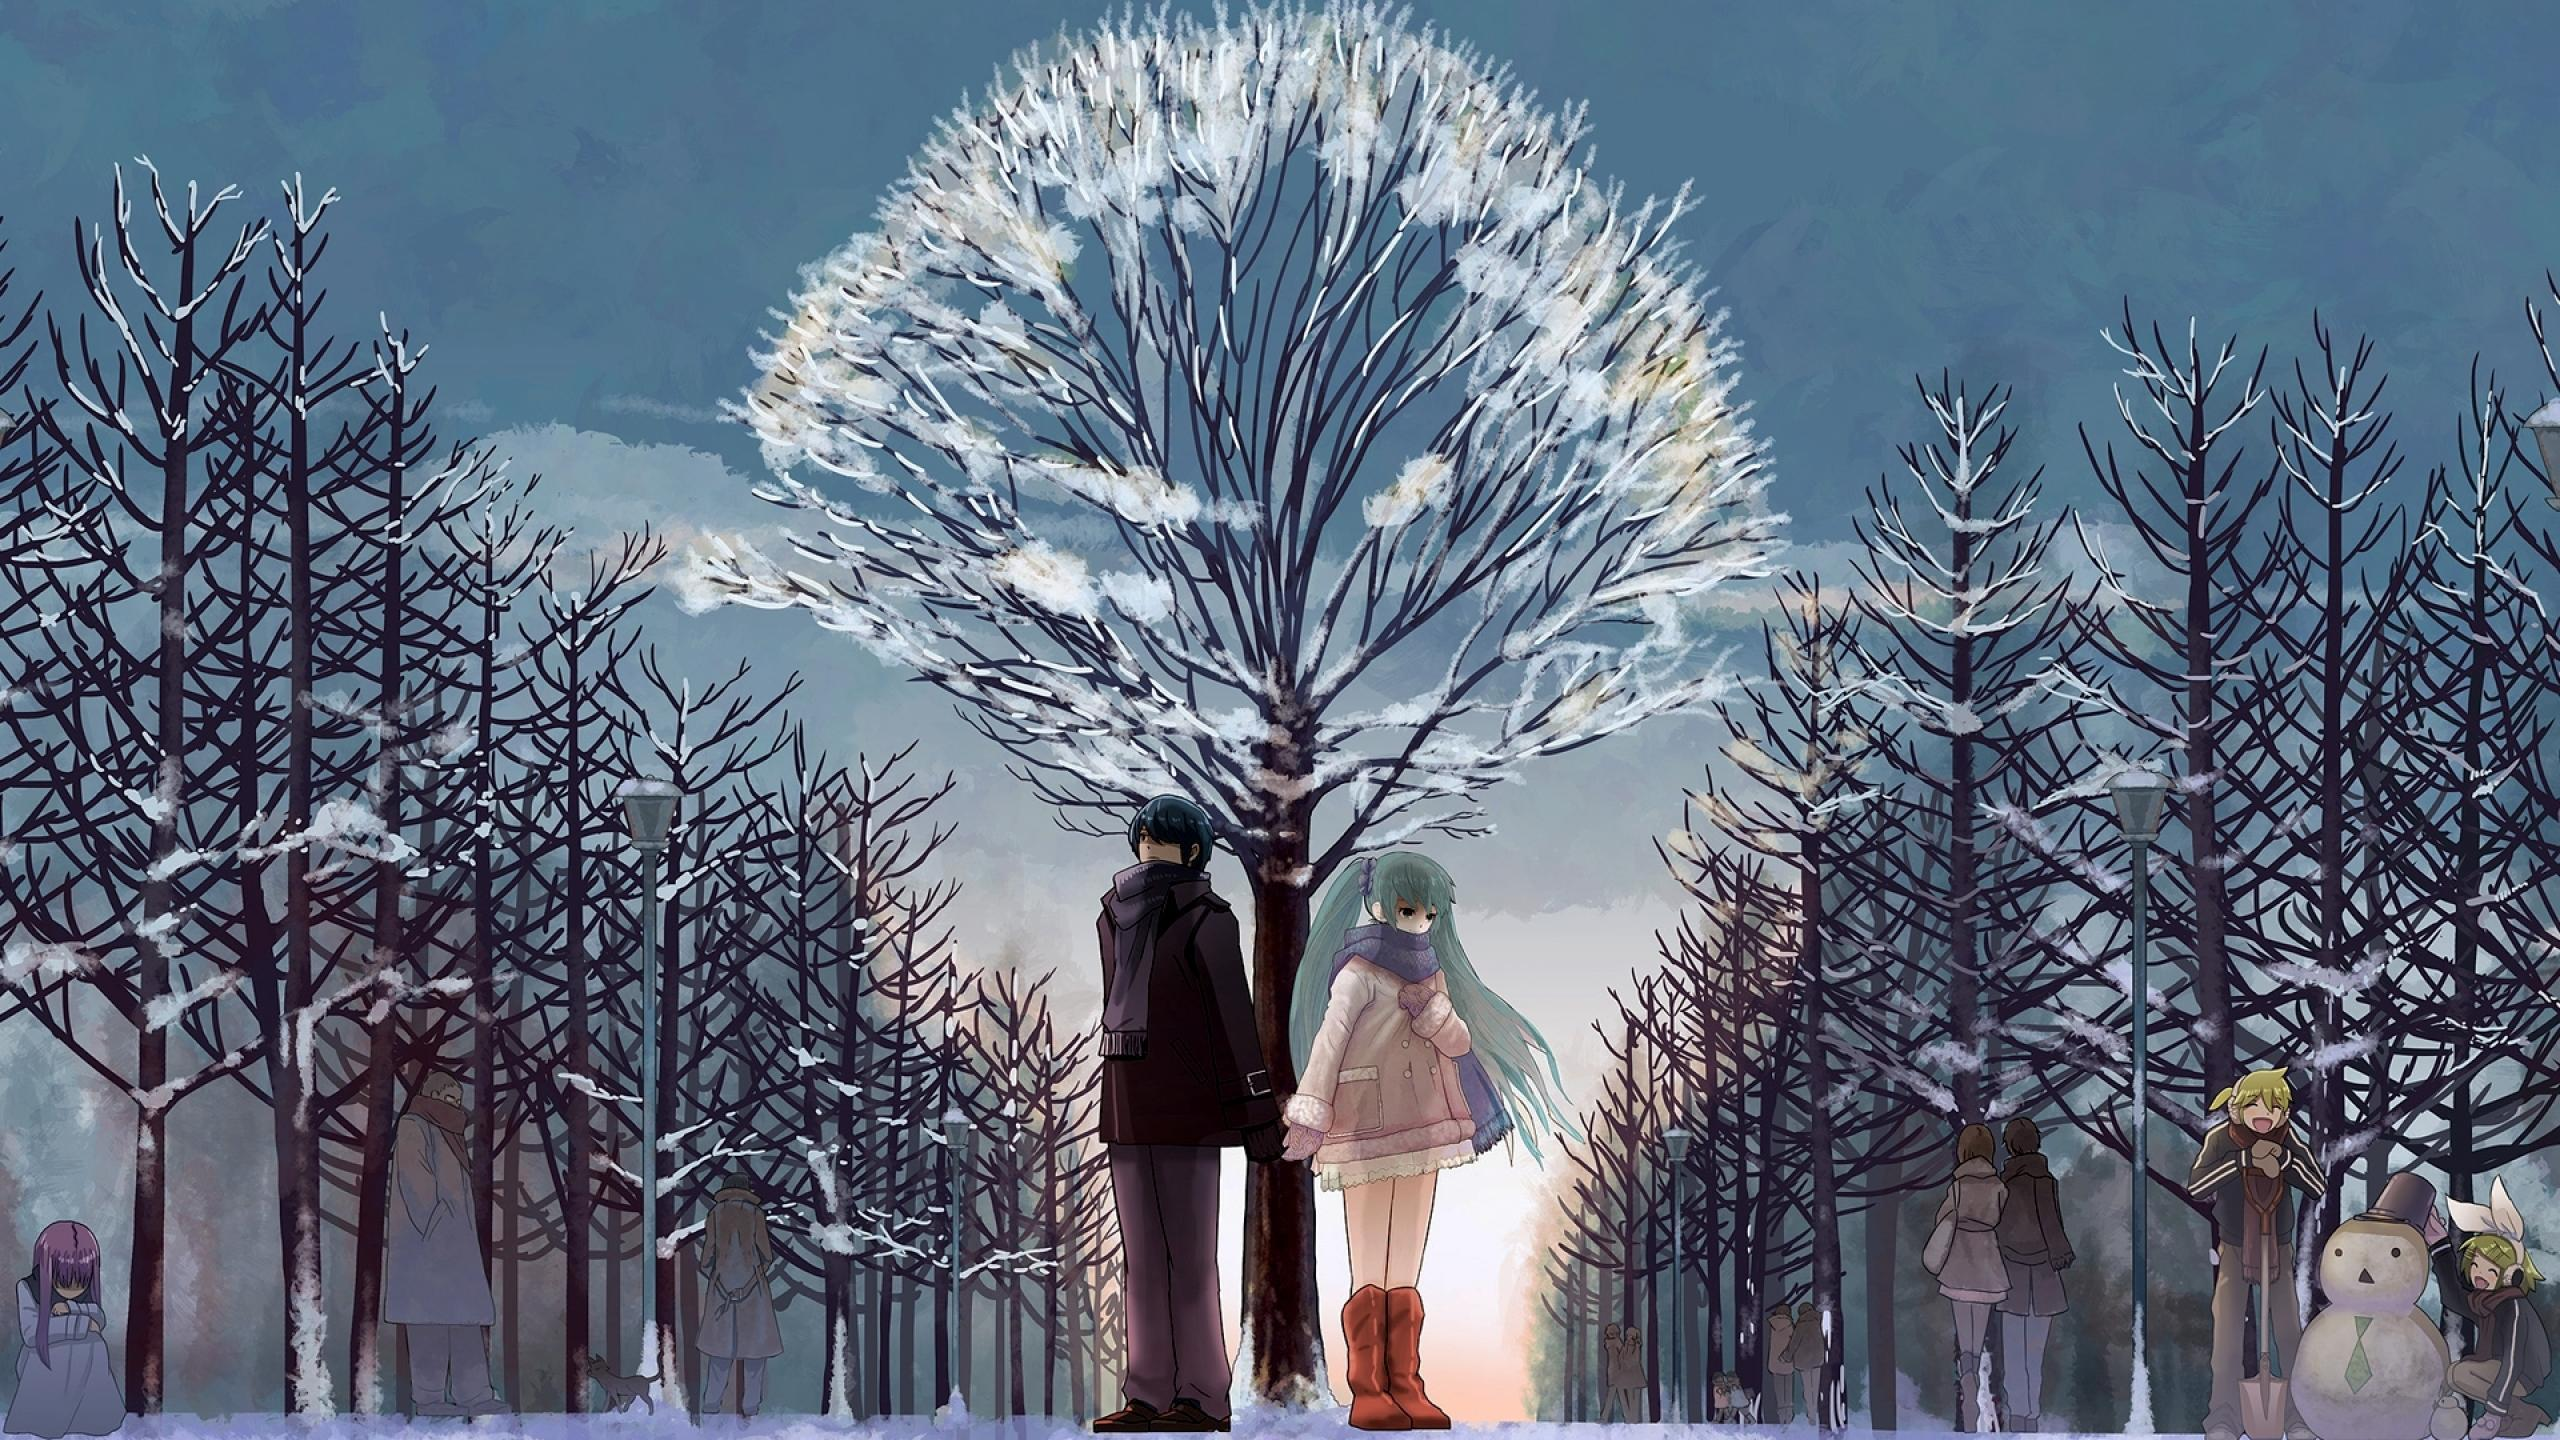 Snow Winter Anime Wallpapers Wallpaper Cave